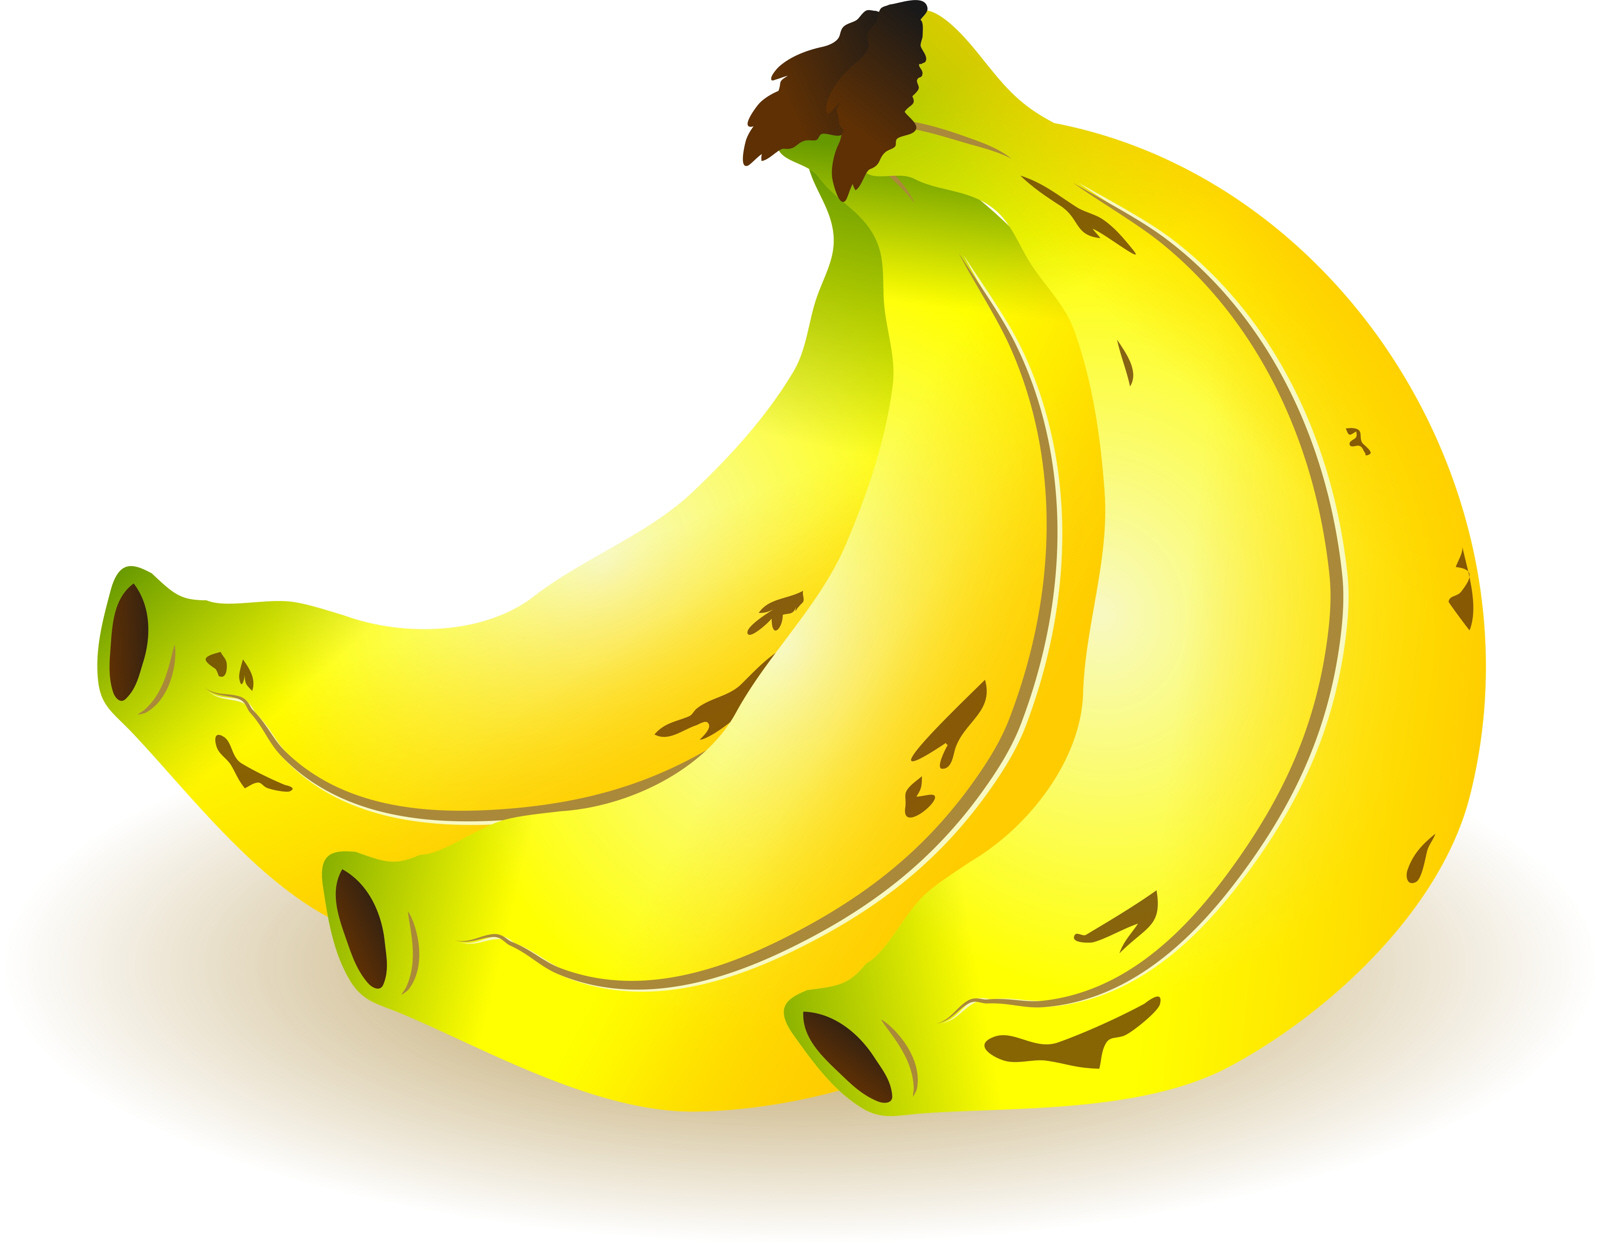 Banana Clipart, Bananas, Clipart, Food, Fruit, HQ Photo